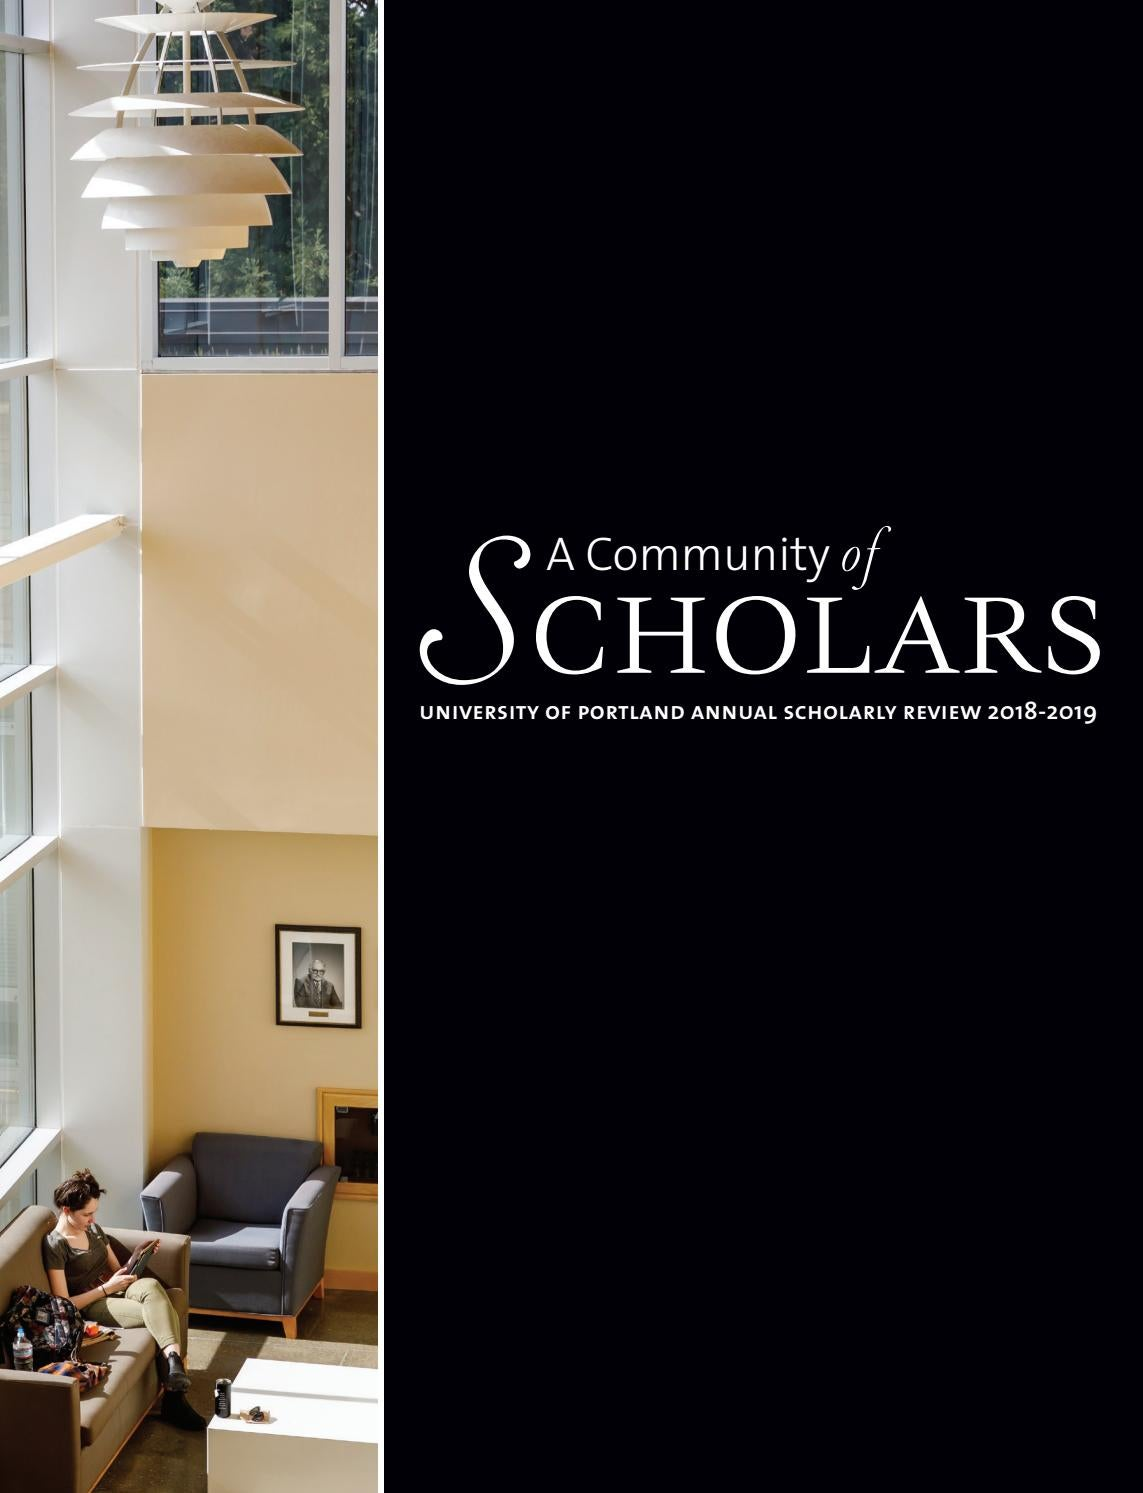 A Community of Scholars - University of Portland Annual